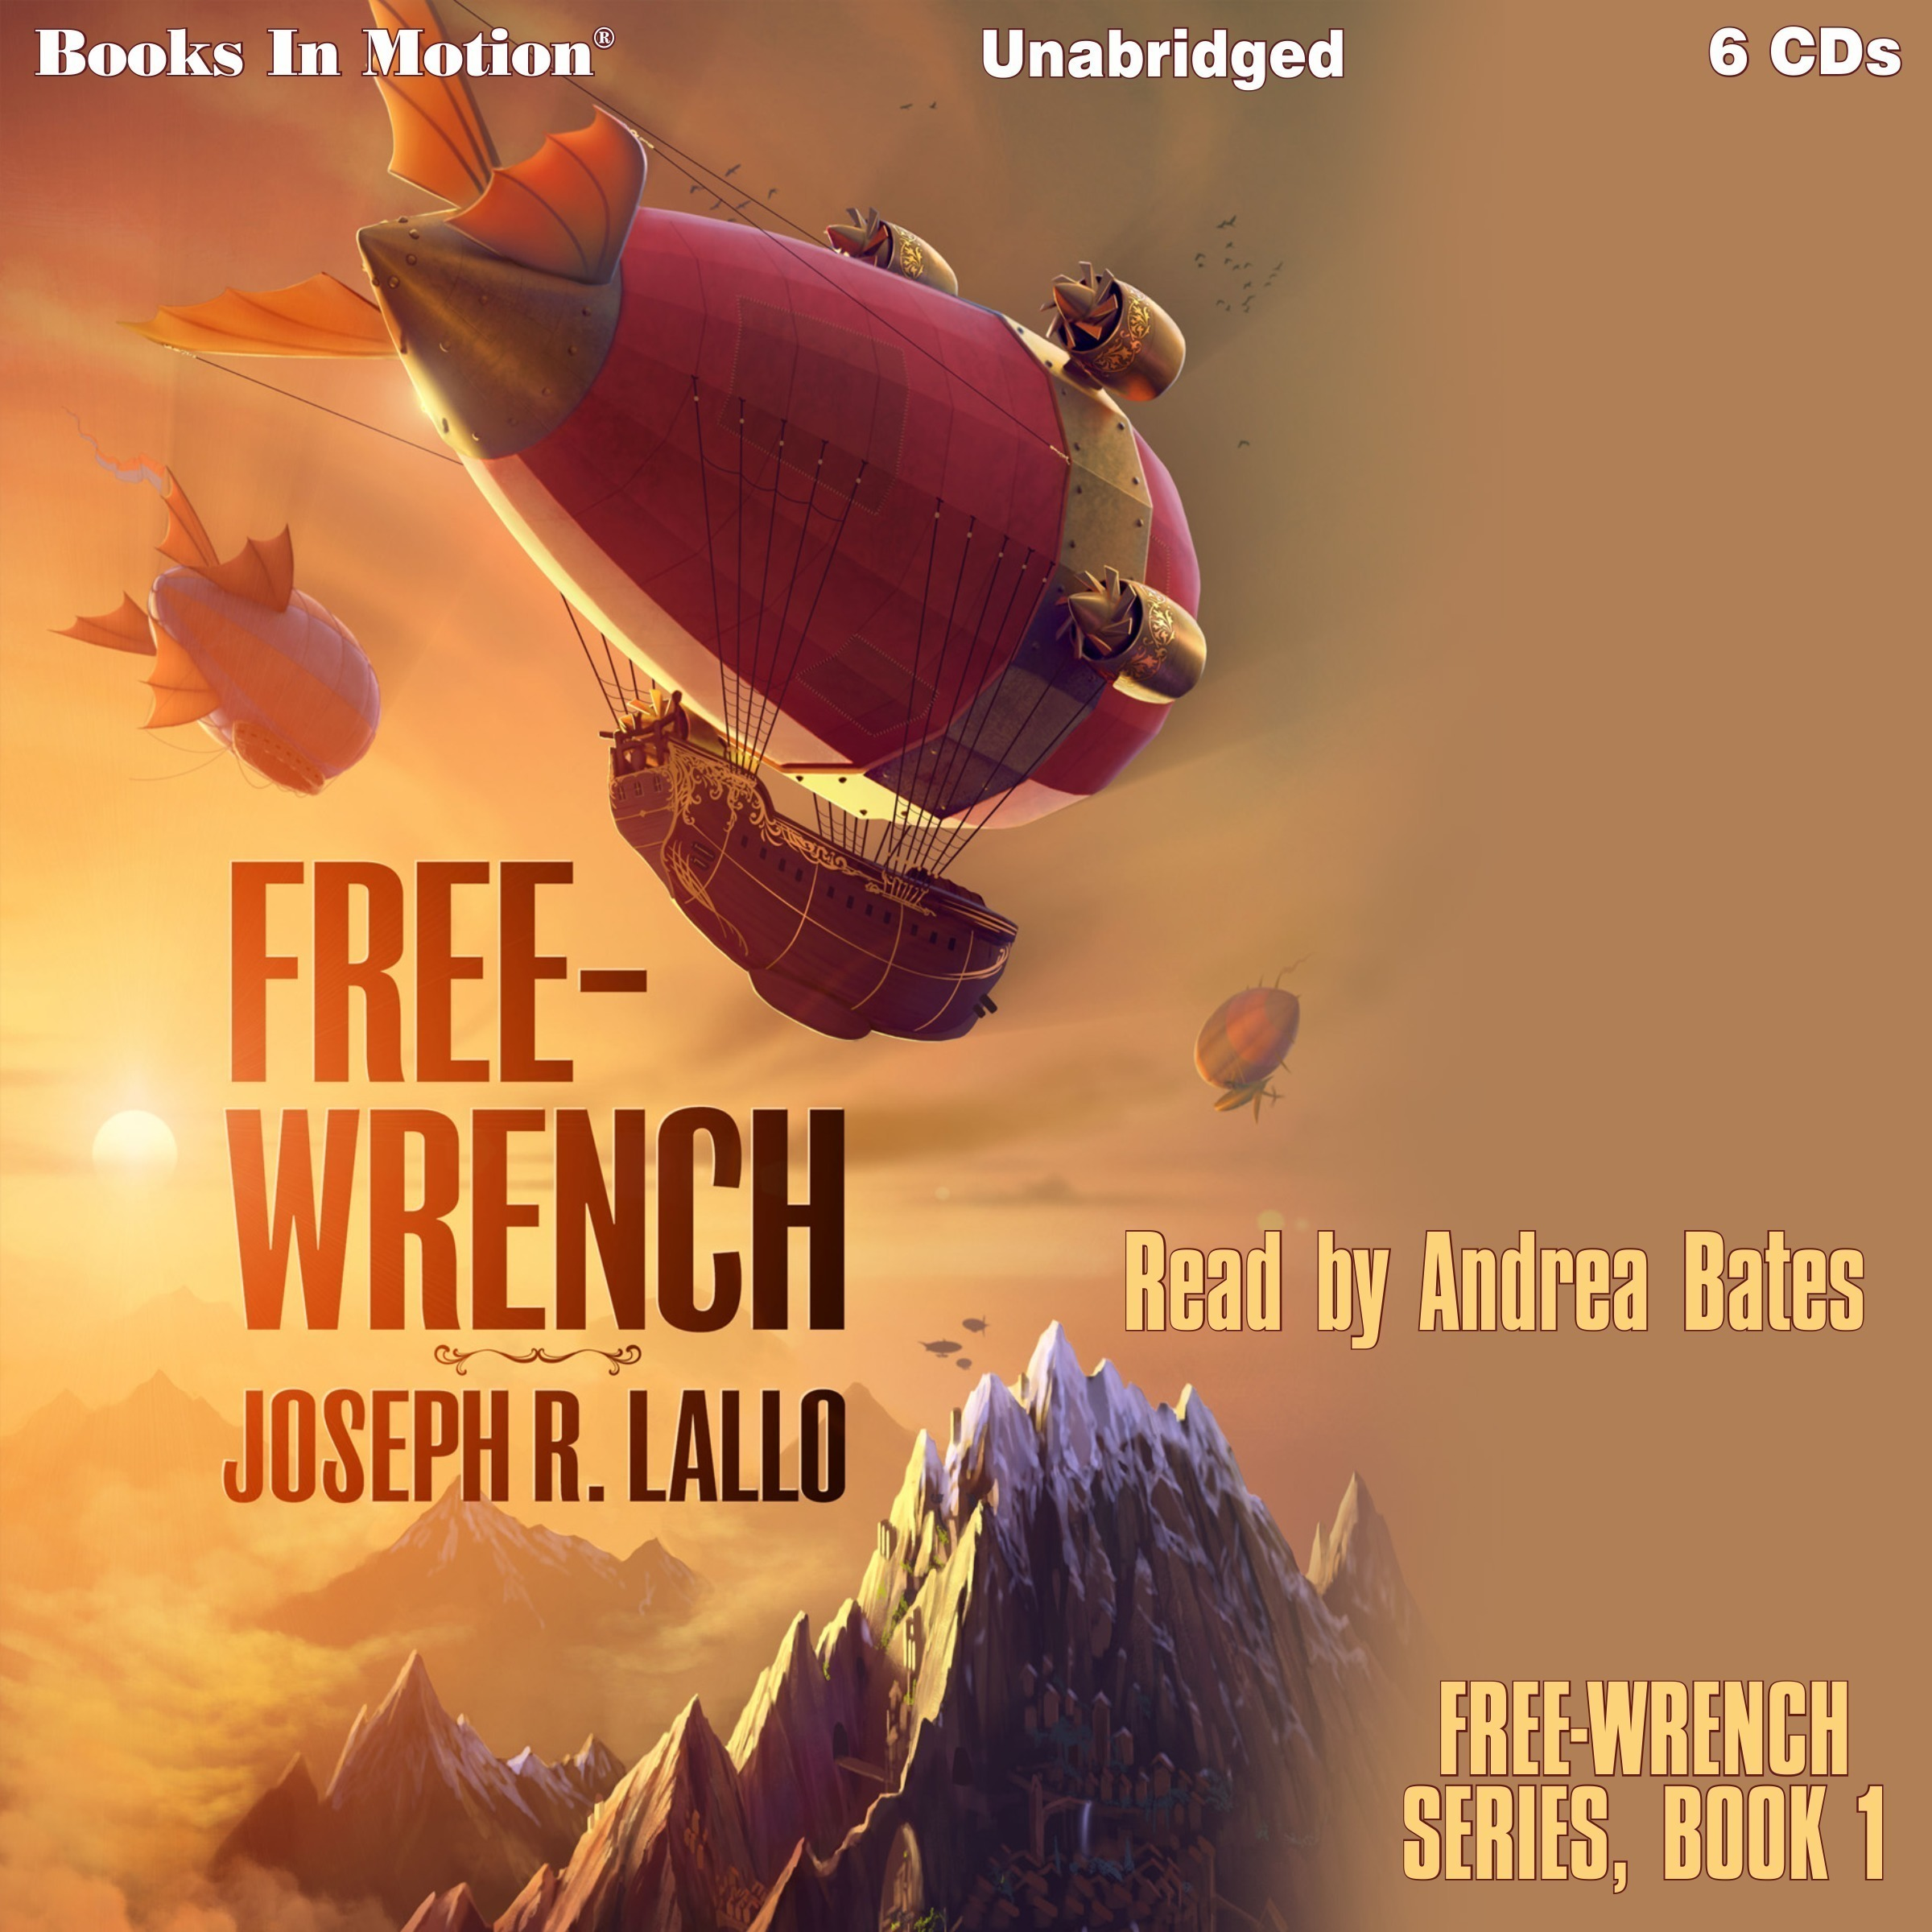 Printable Free-Wrench: Free-Wrench series, book 1 Audiobook Cover Art